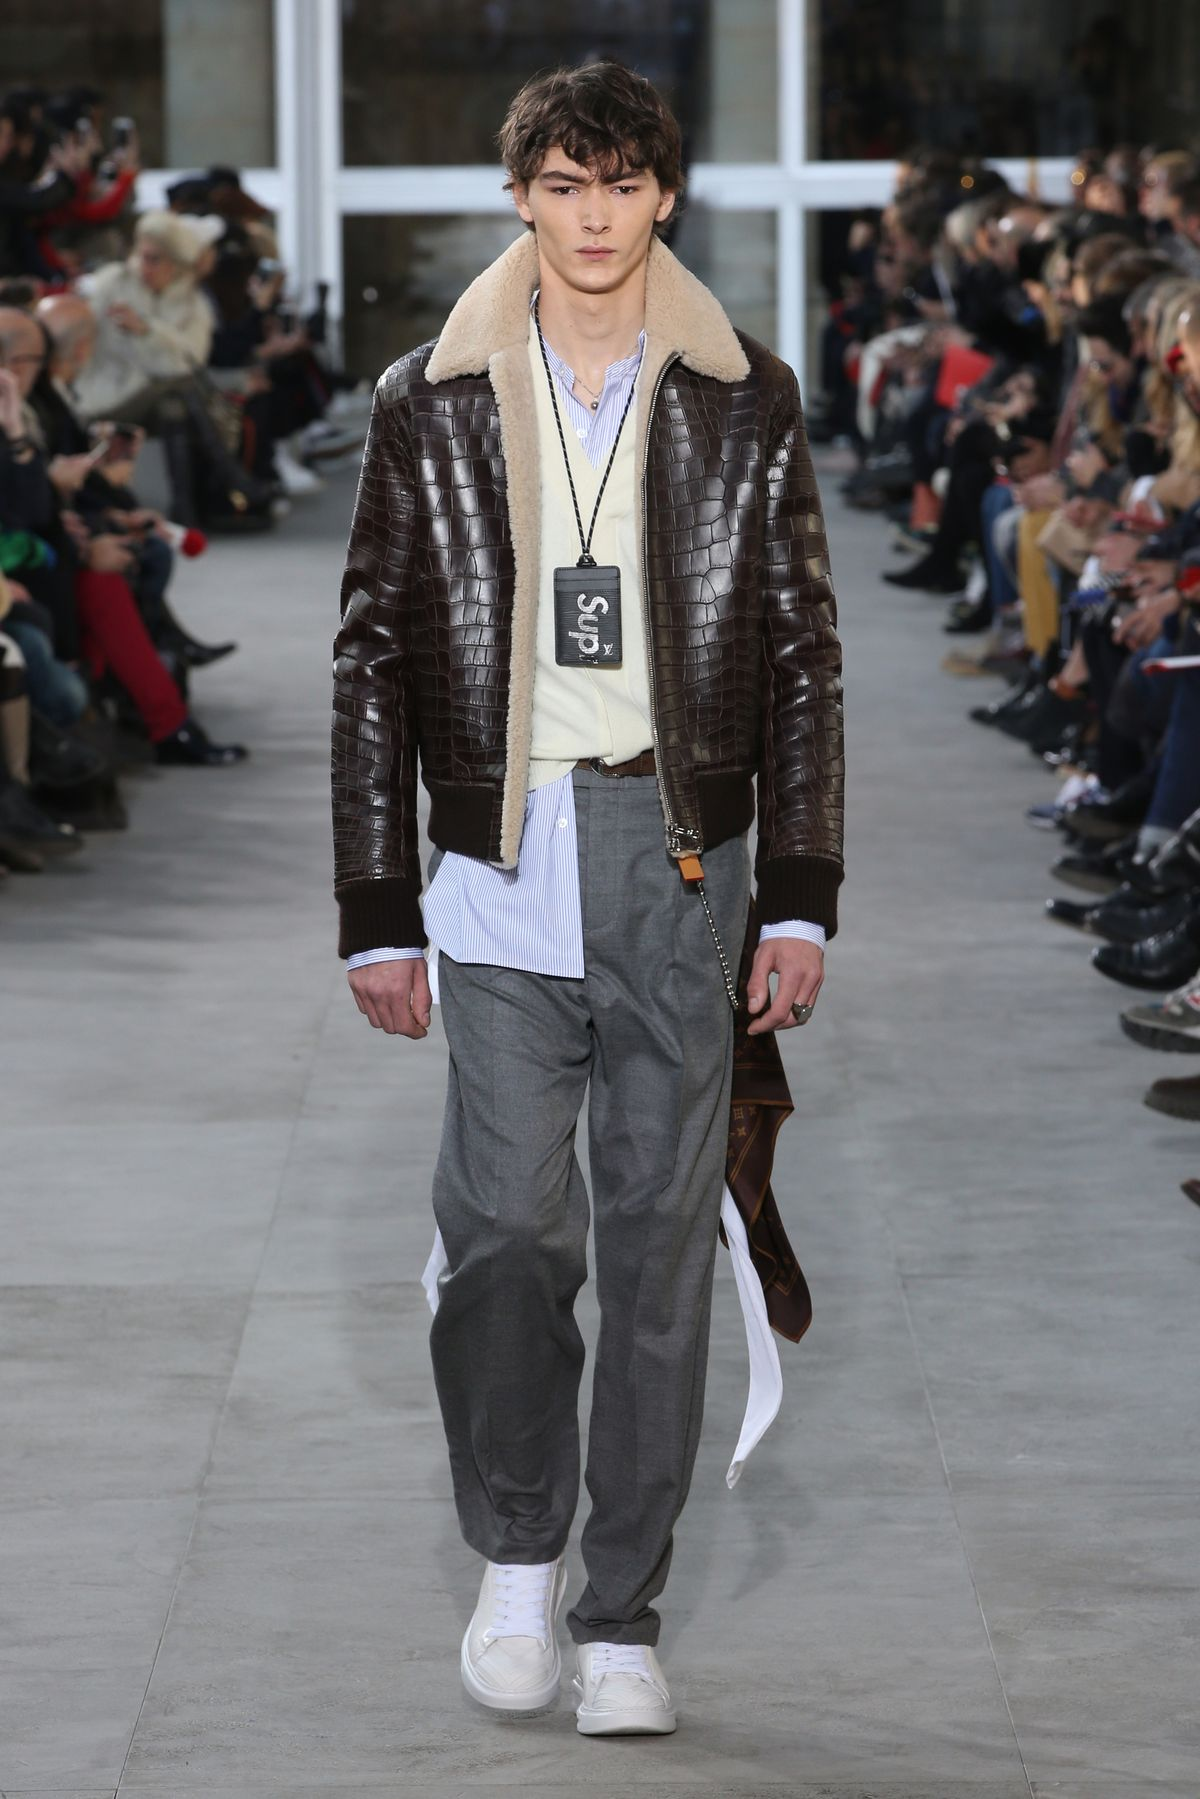 Louis Vuitton, Herren, Herbst / Winter, 2017 / 2018